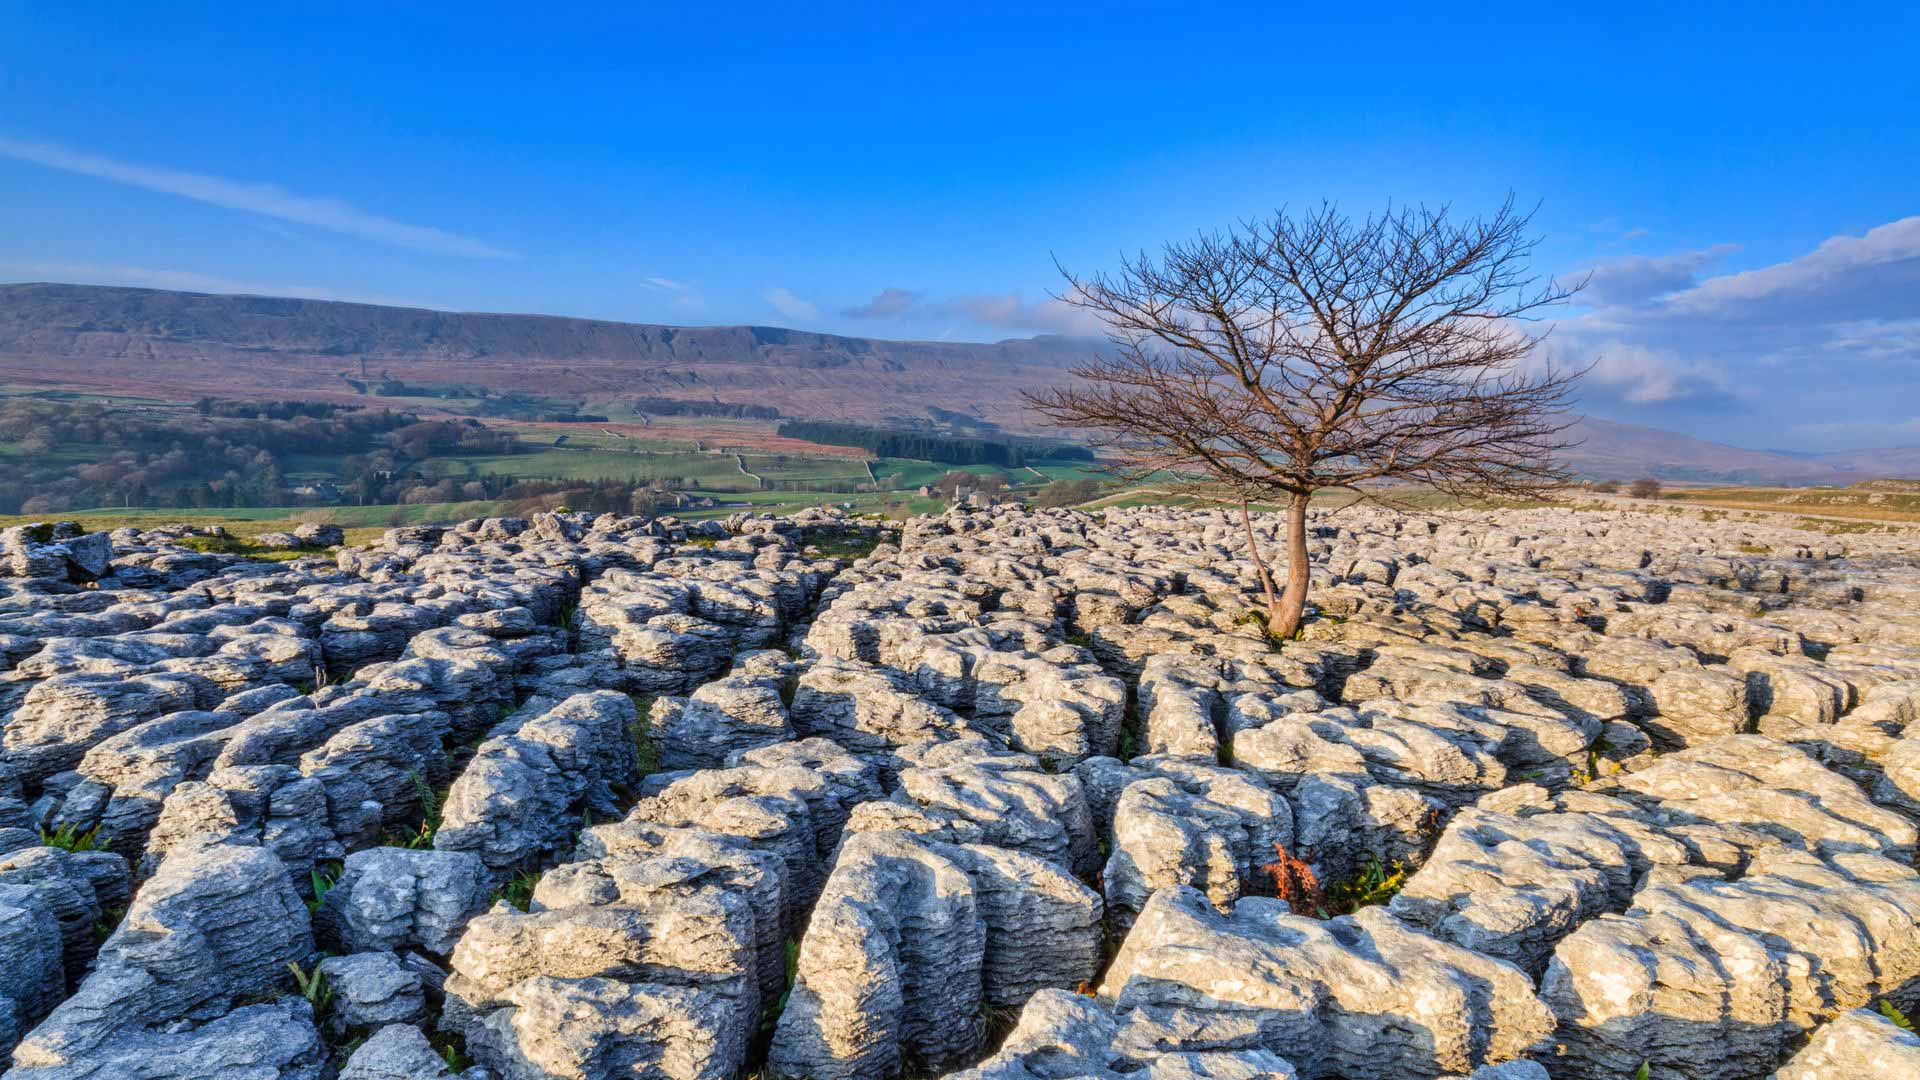 Limestone pavement at Yorkshire Dales National Park, England - creditchris2766